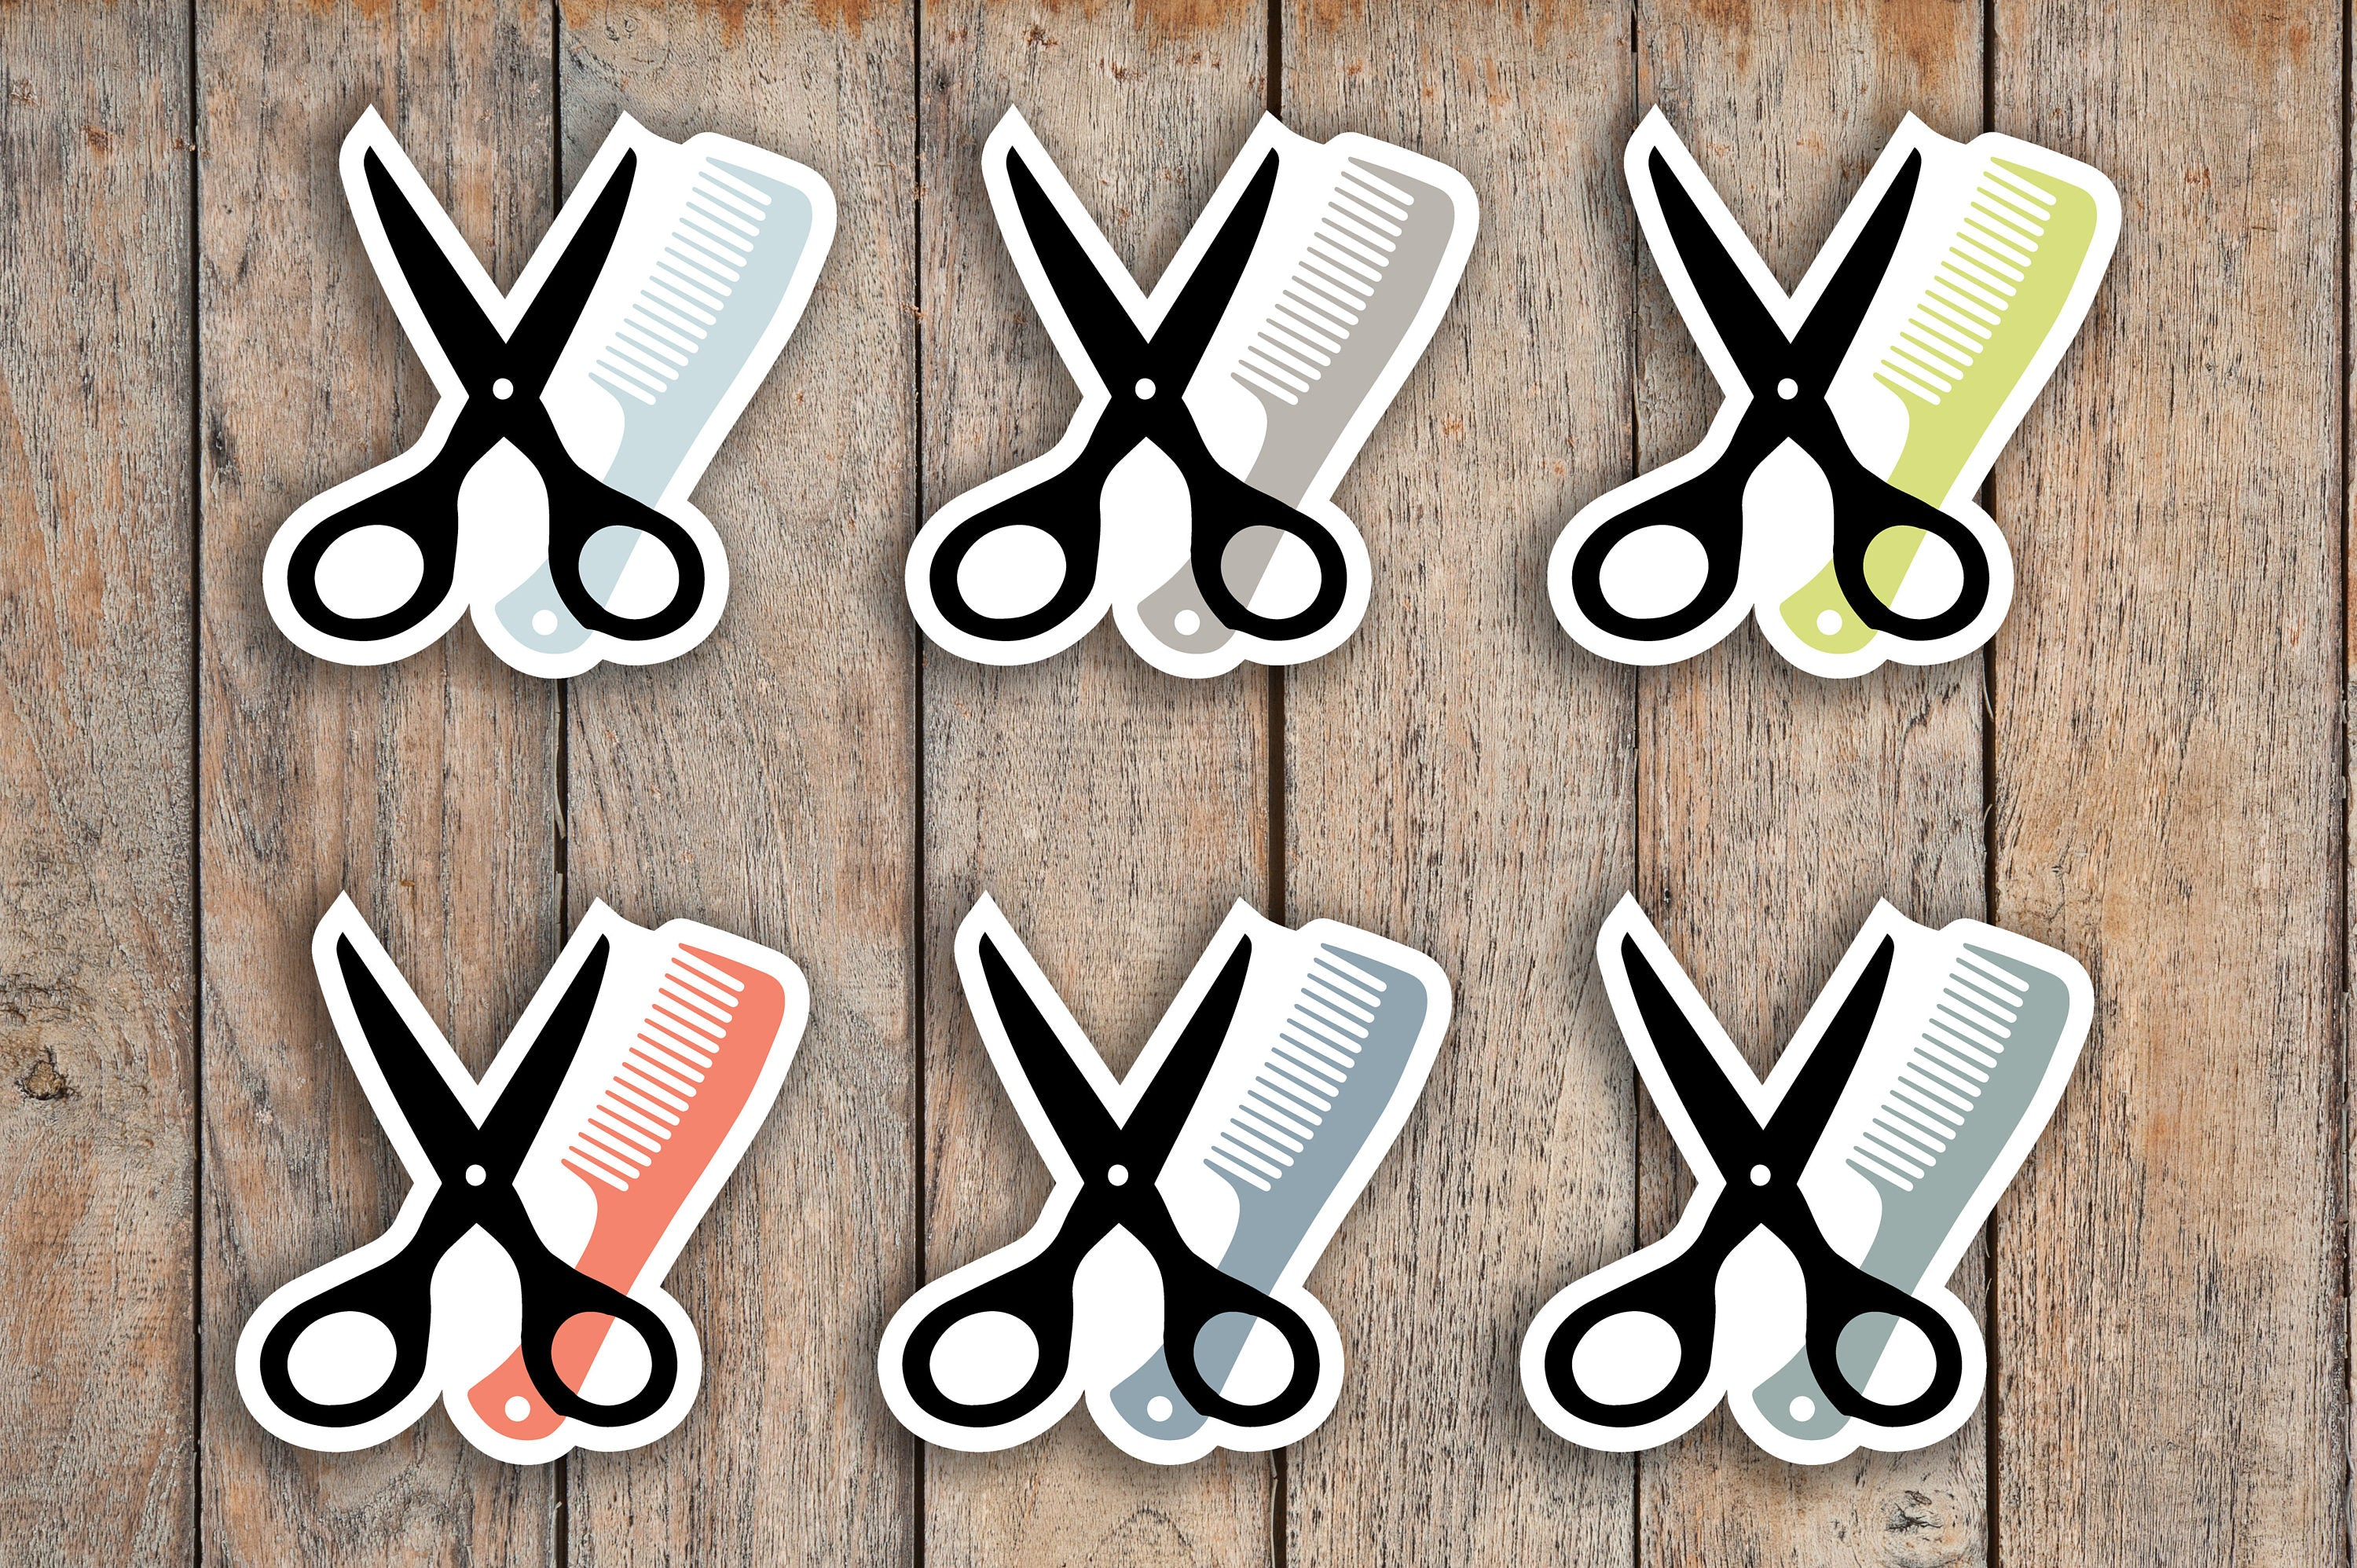 54 Haircut, Hair Appointment, Salon, Comb & Scissors Icon Planner Stickers for 2018 inkWELL Press Planners IWP-Q15